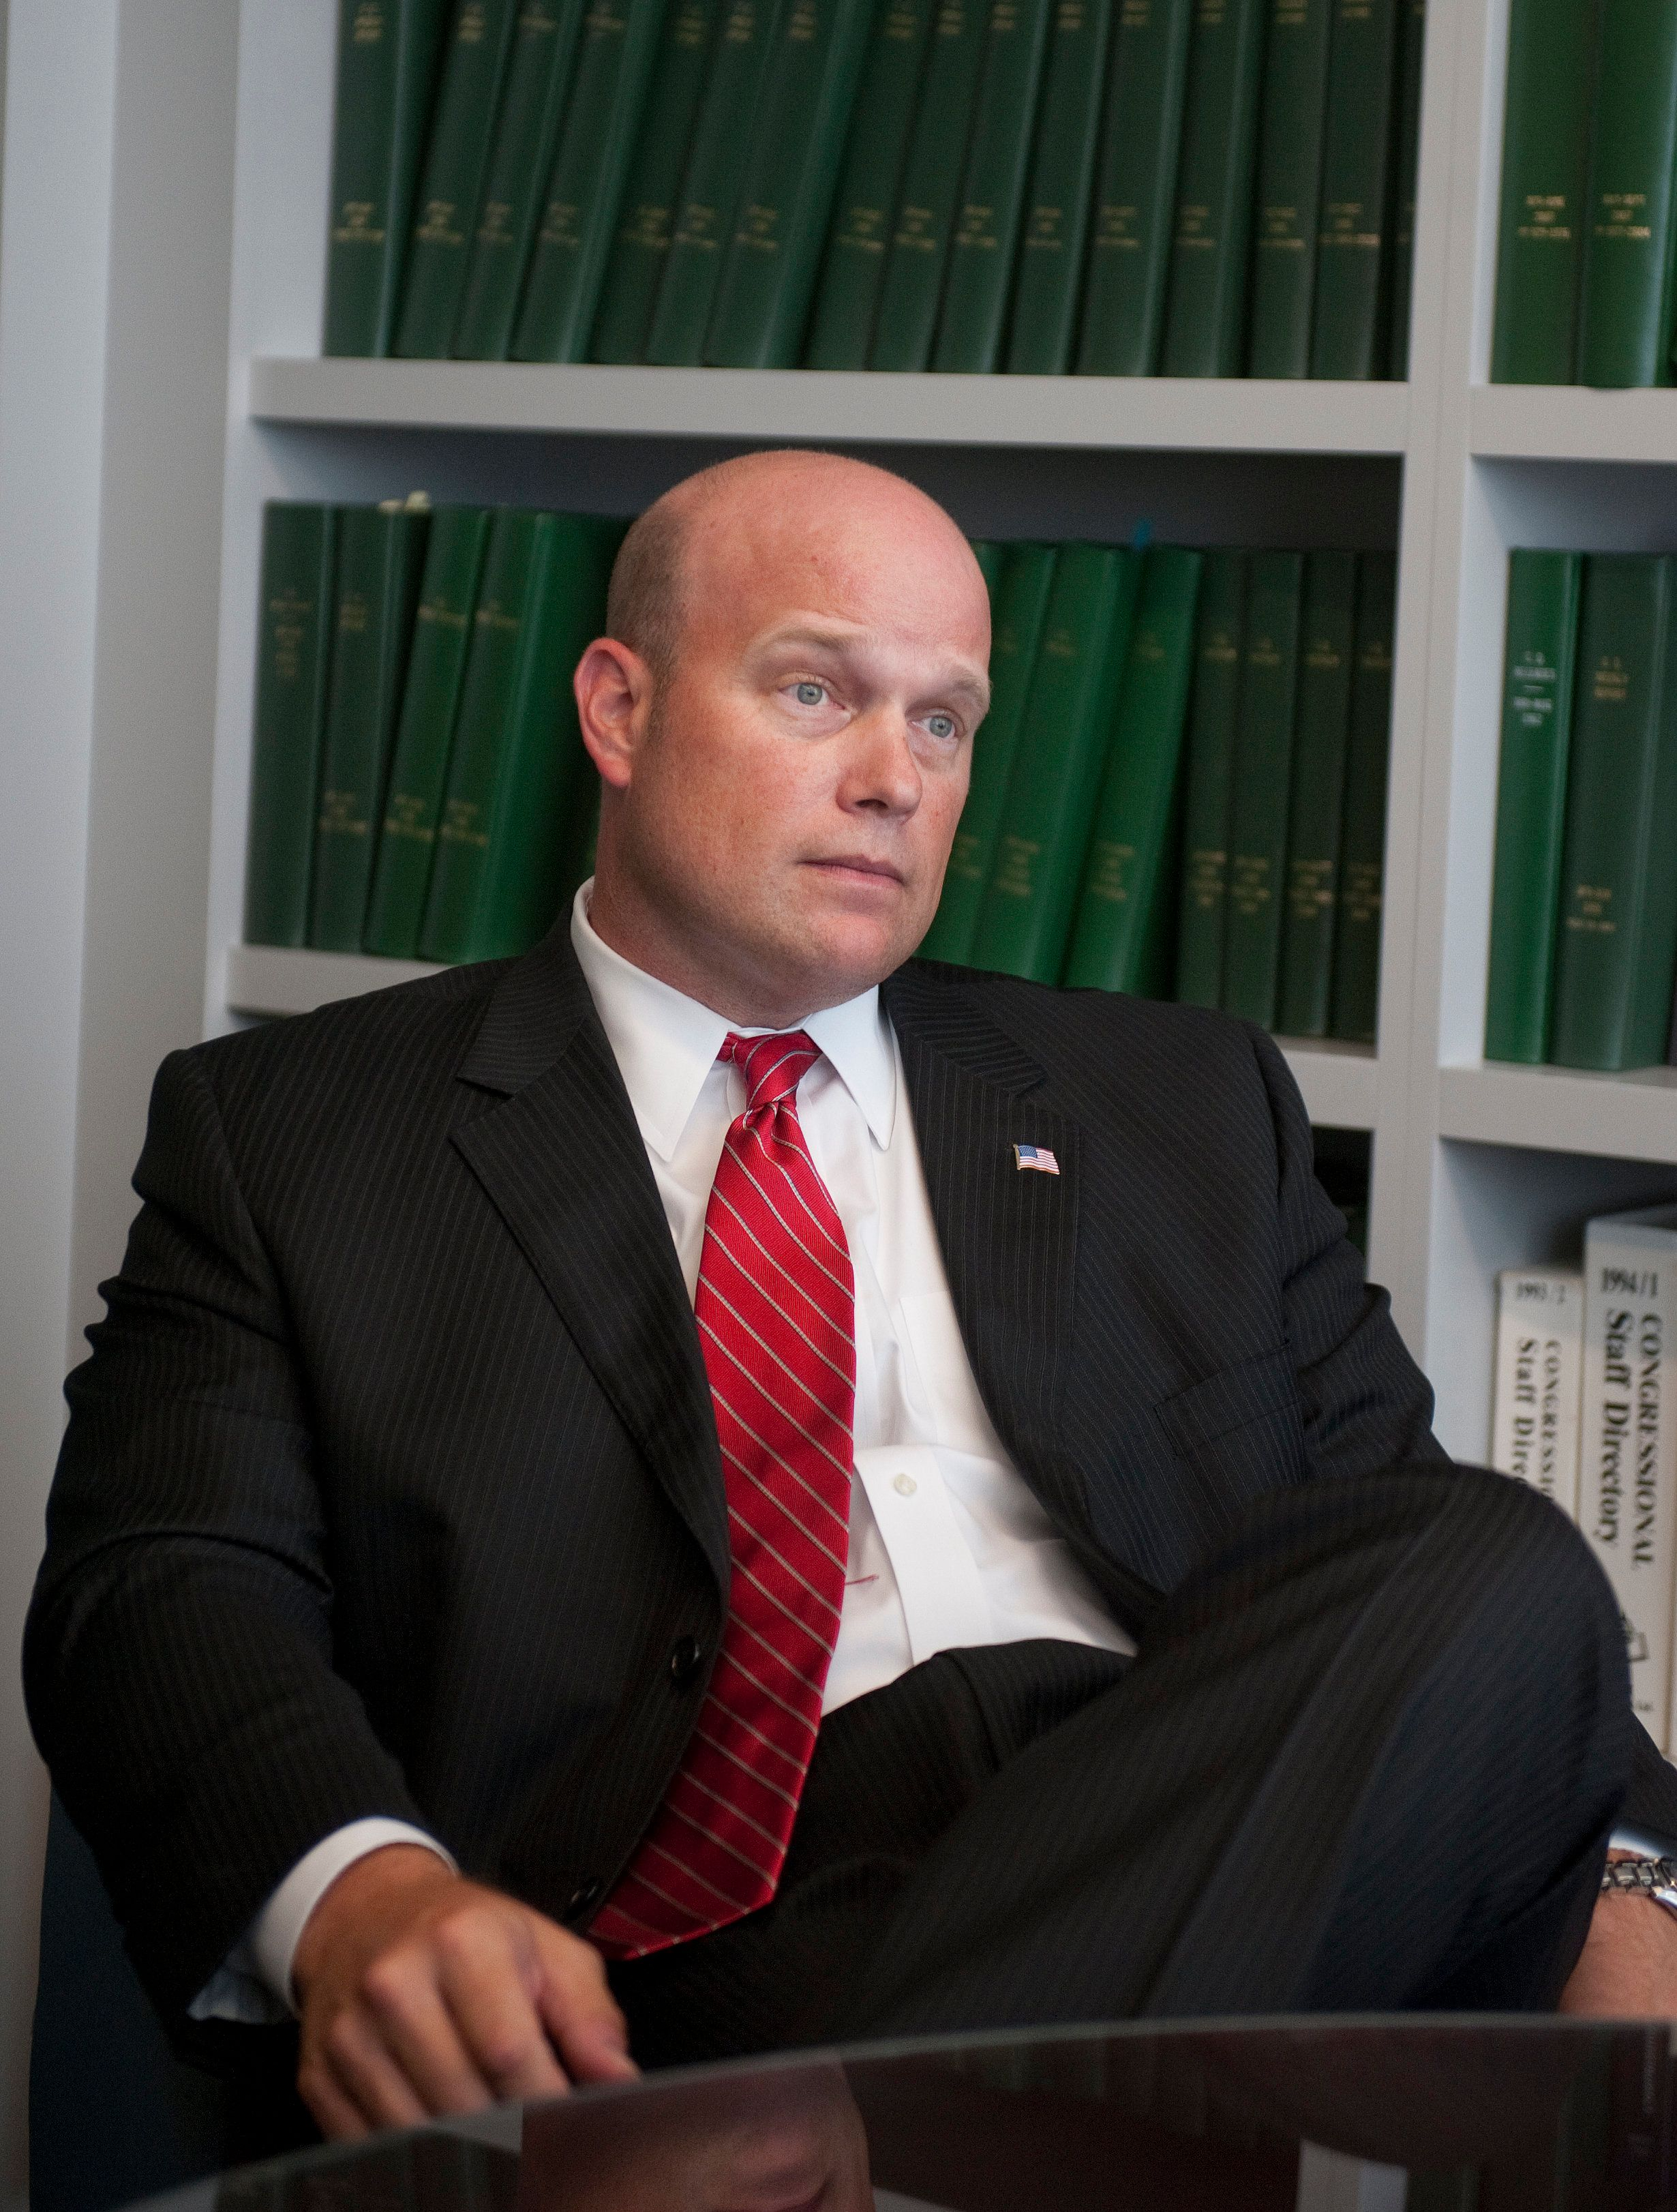 Matt Whitaker, Trump's Acting Attorney General Pick, Is A Major Critic Of The Russia Probe